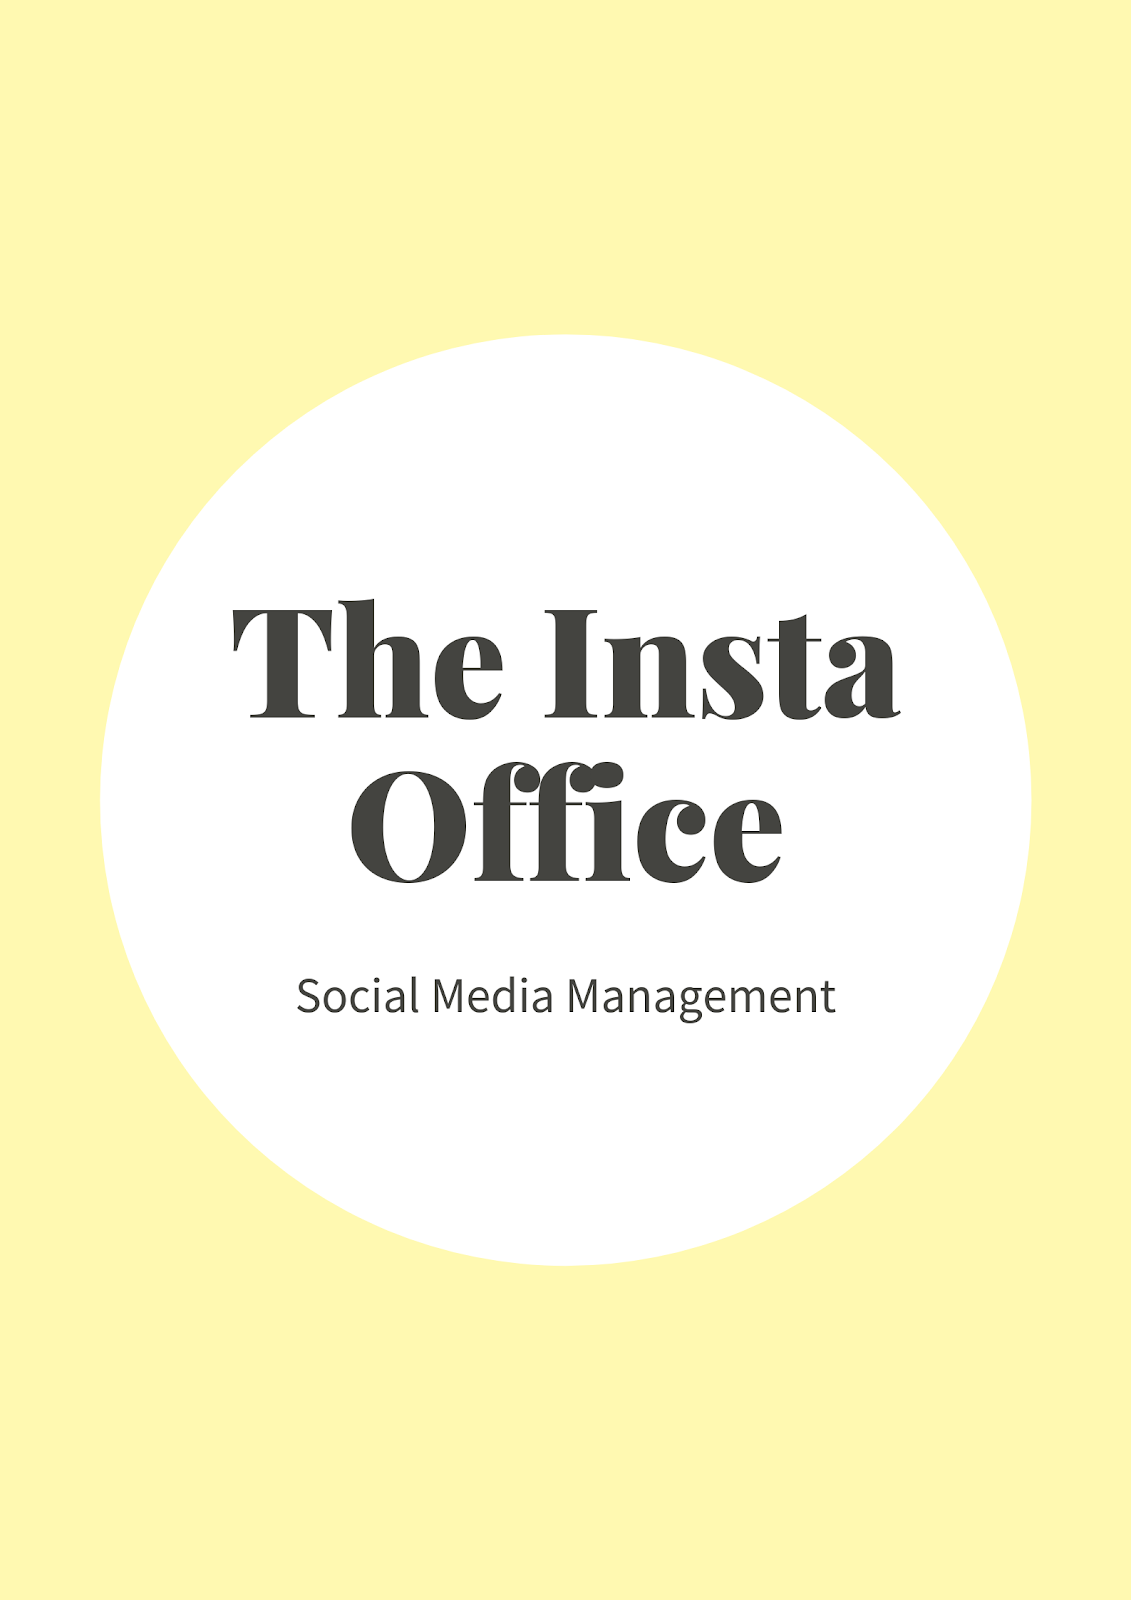 The Insta Office